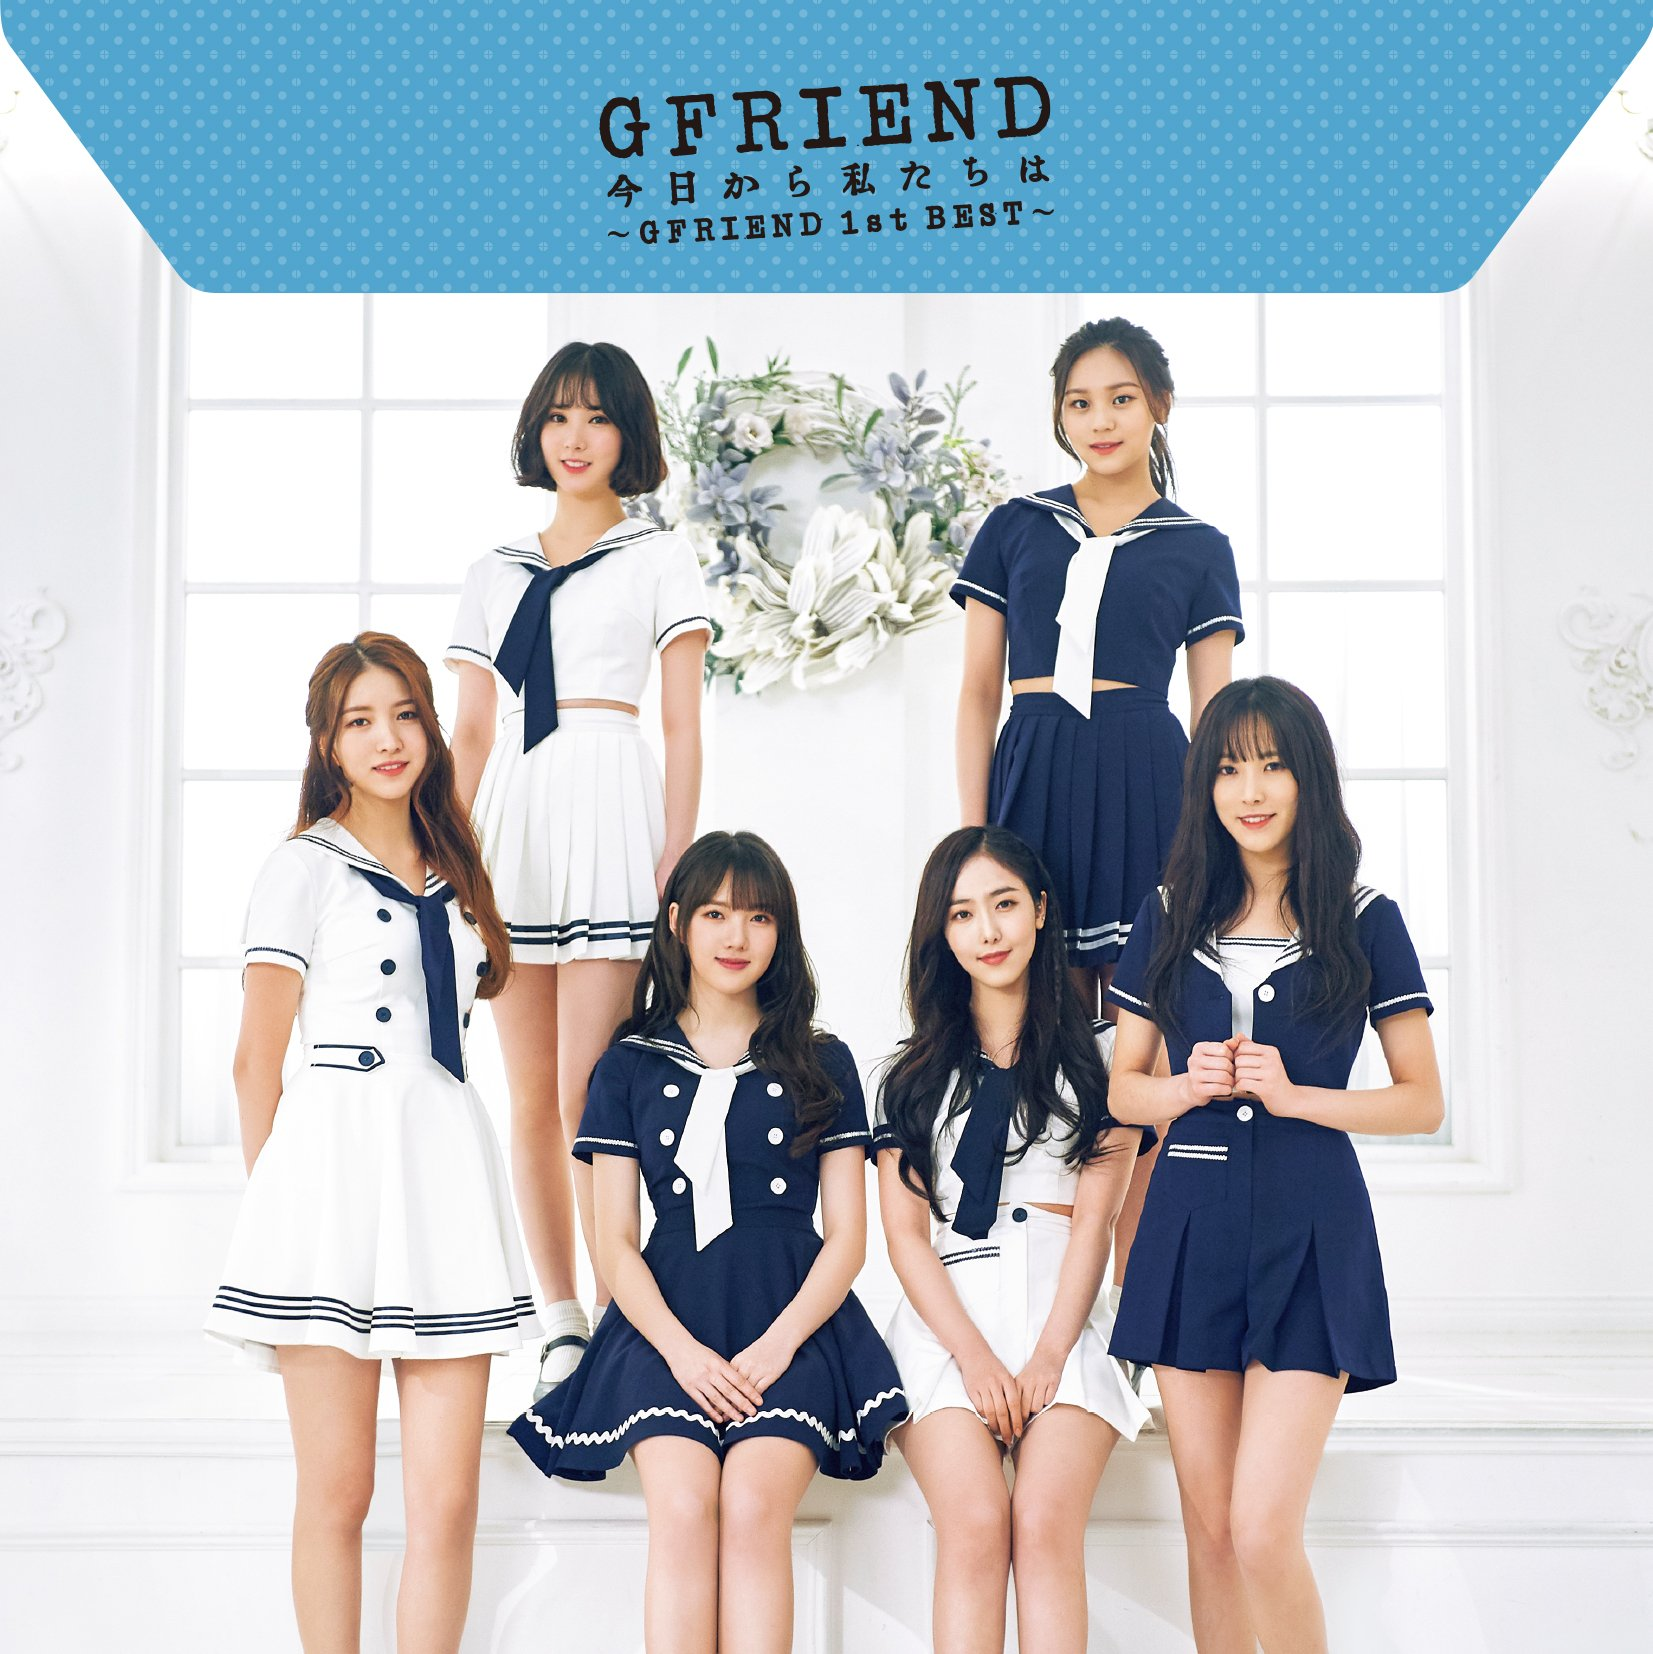 CD : Gfriend - Kyoukara Watashitachiha (limited B Version) (Japan - Import, 2PC)